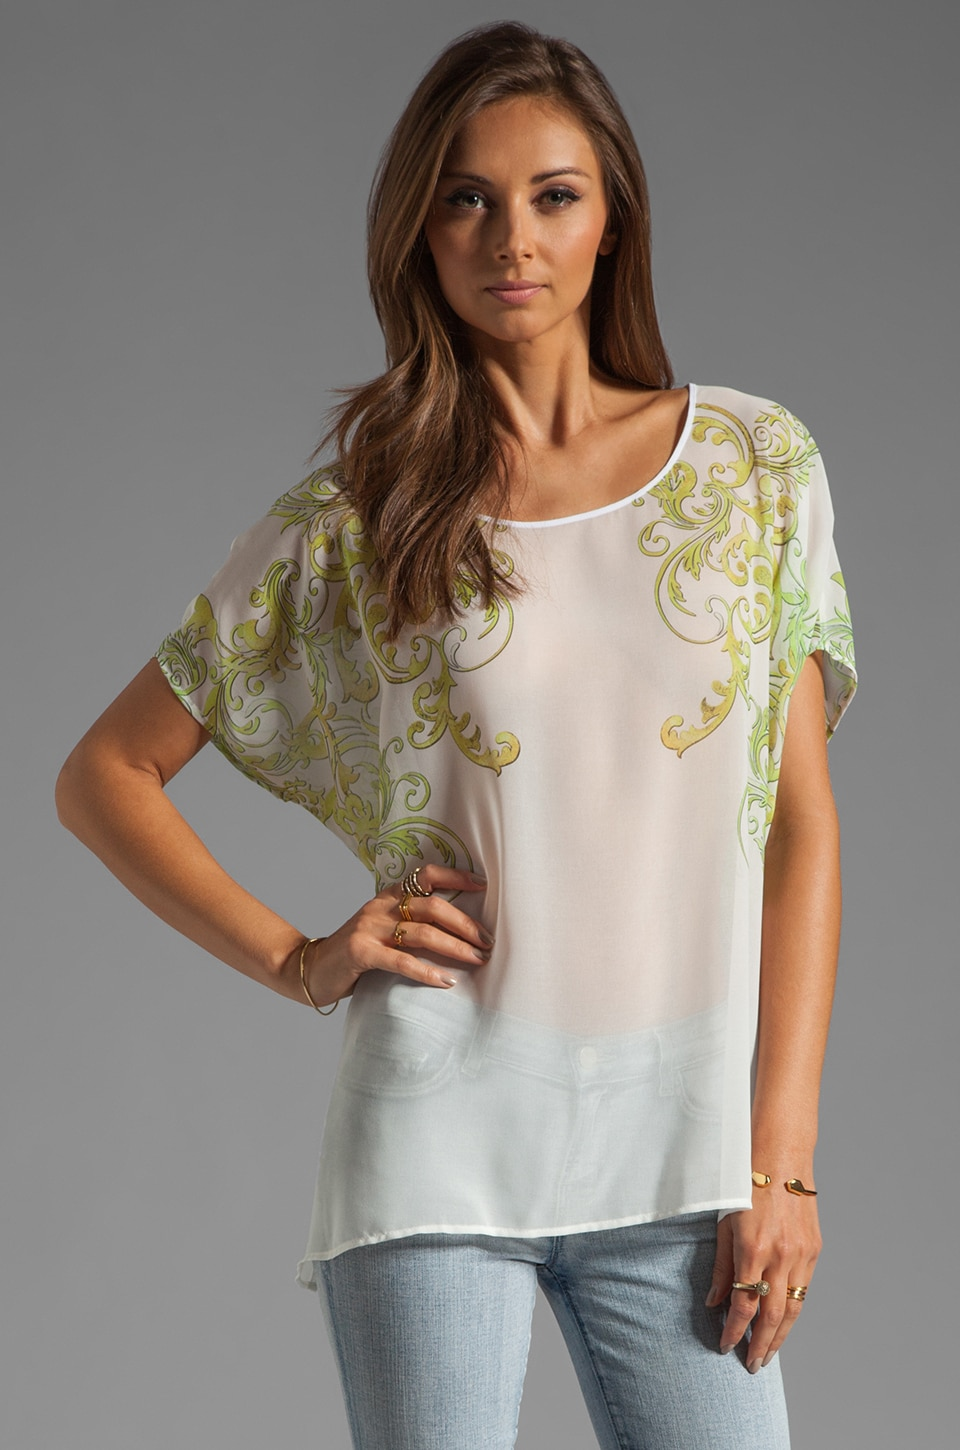 Clover Canyon Neon Filigree Short Sleeve Top in White